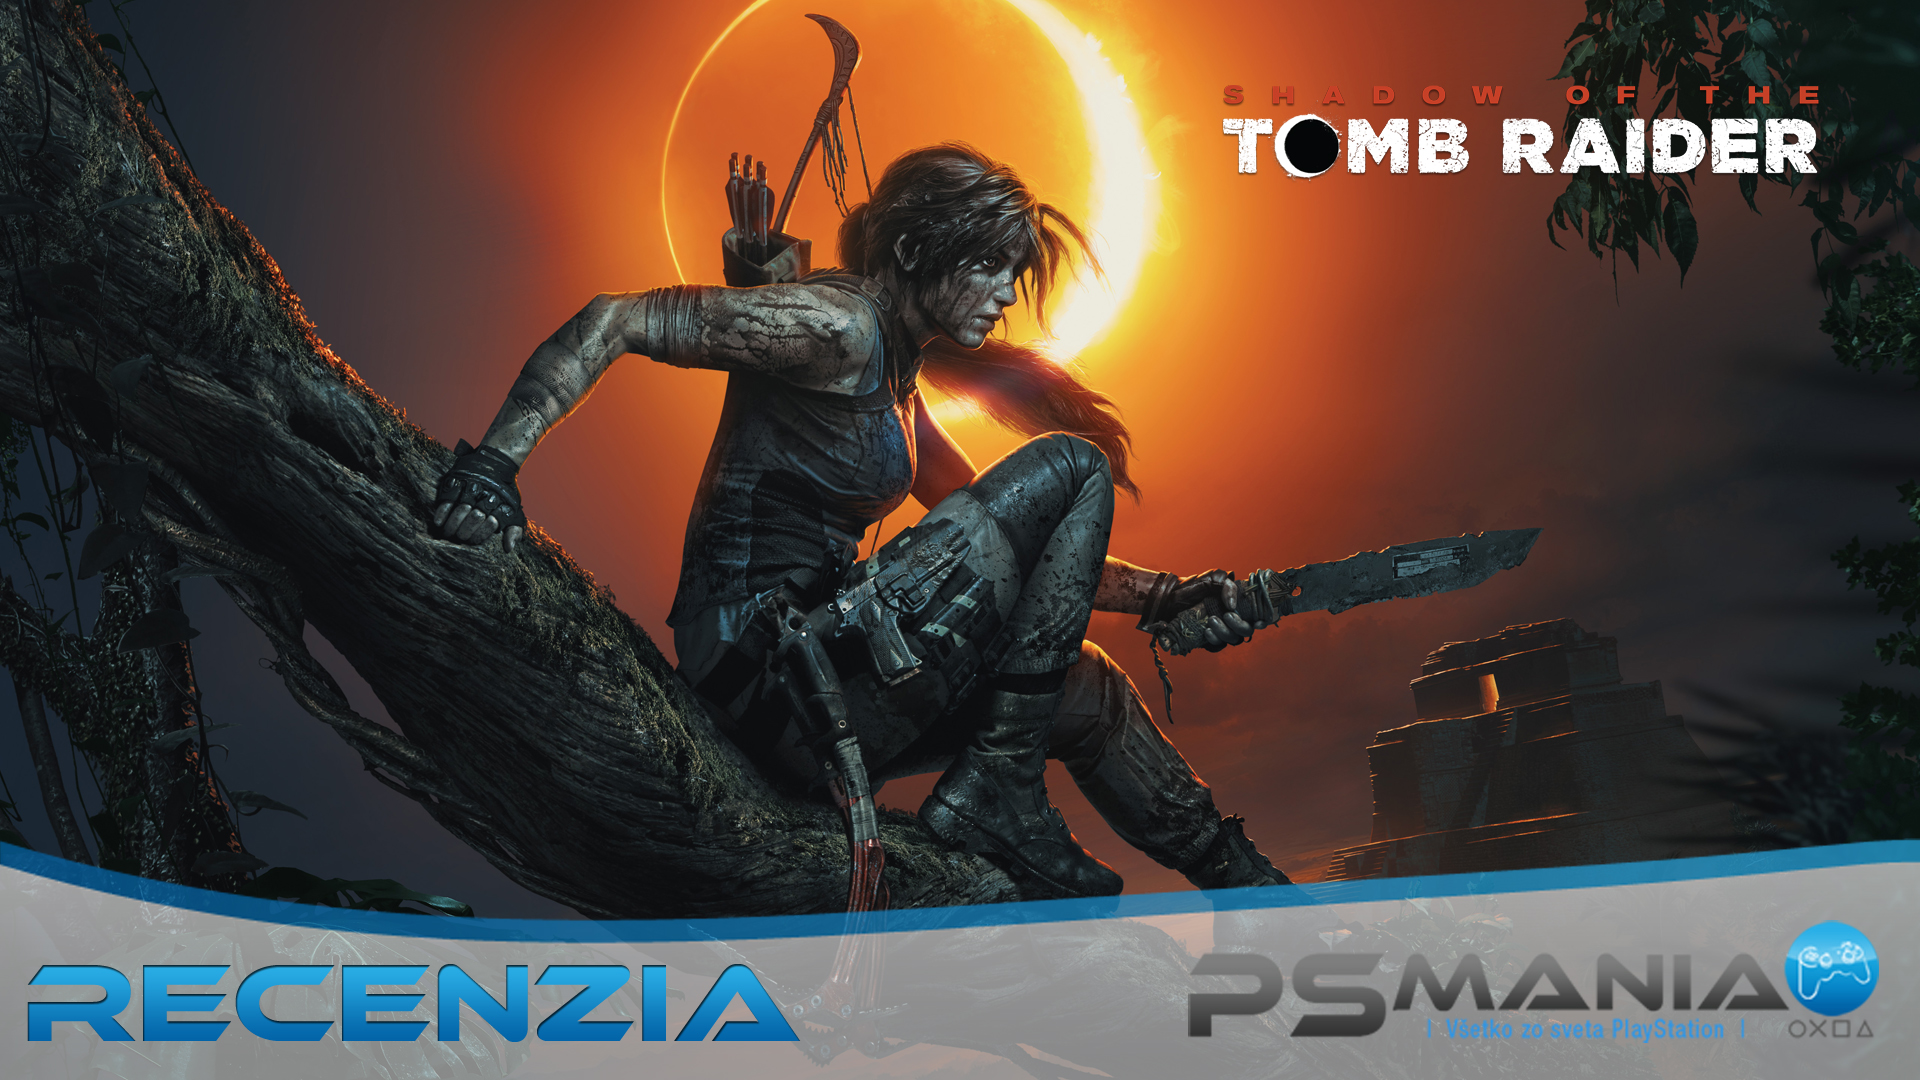 recenzia shadow of the tomb raider.jpg